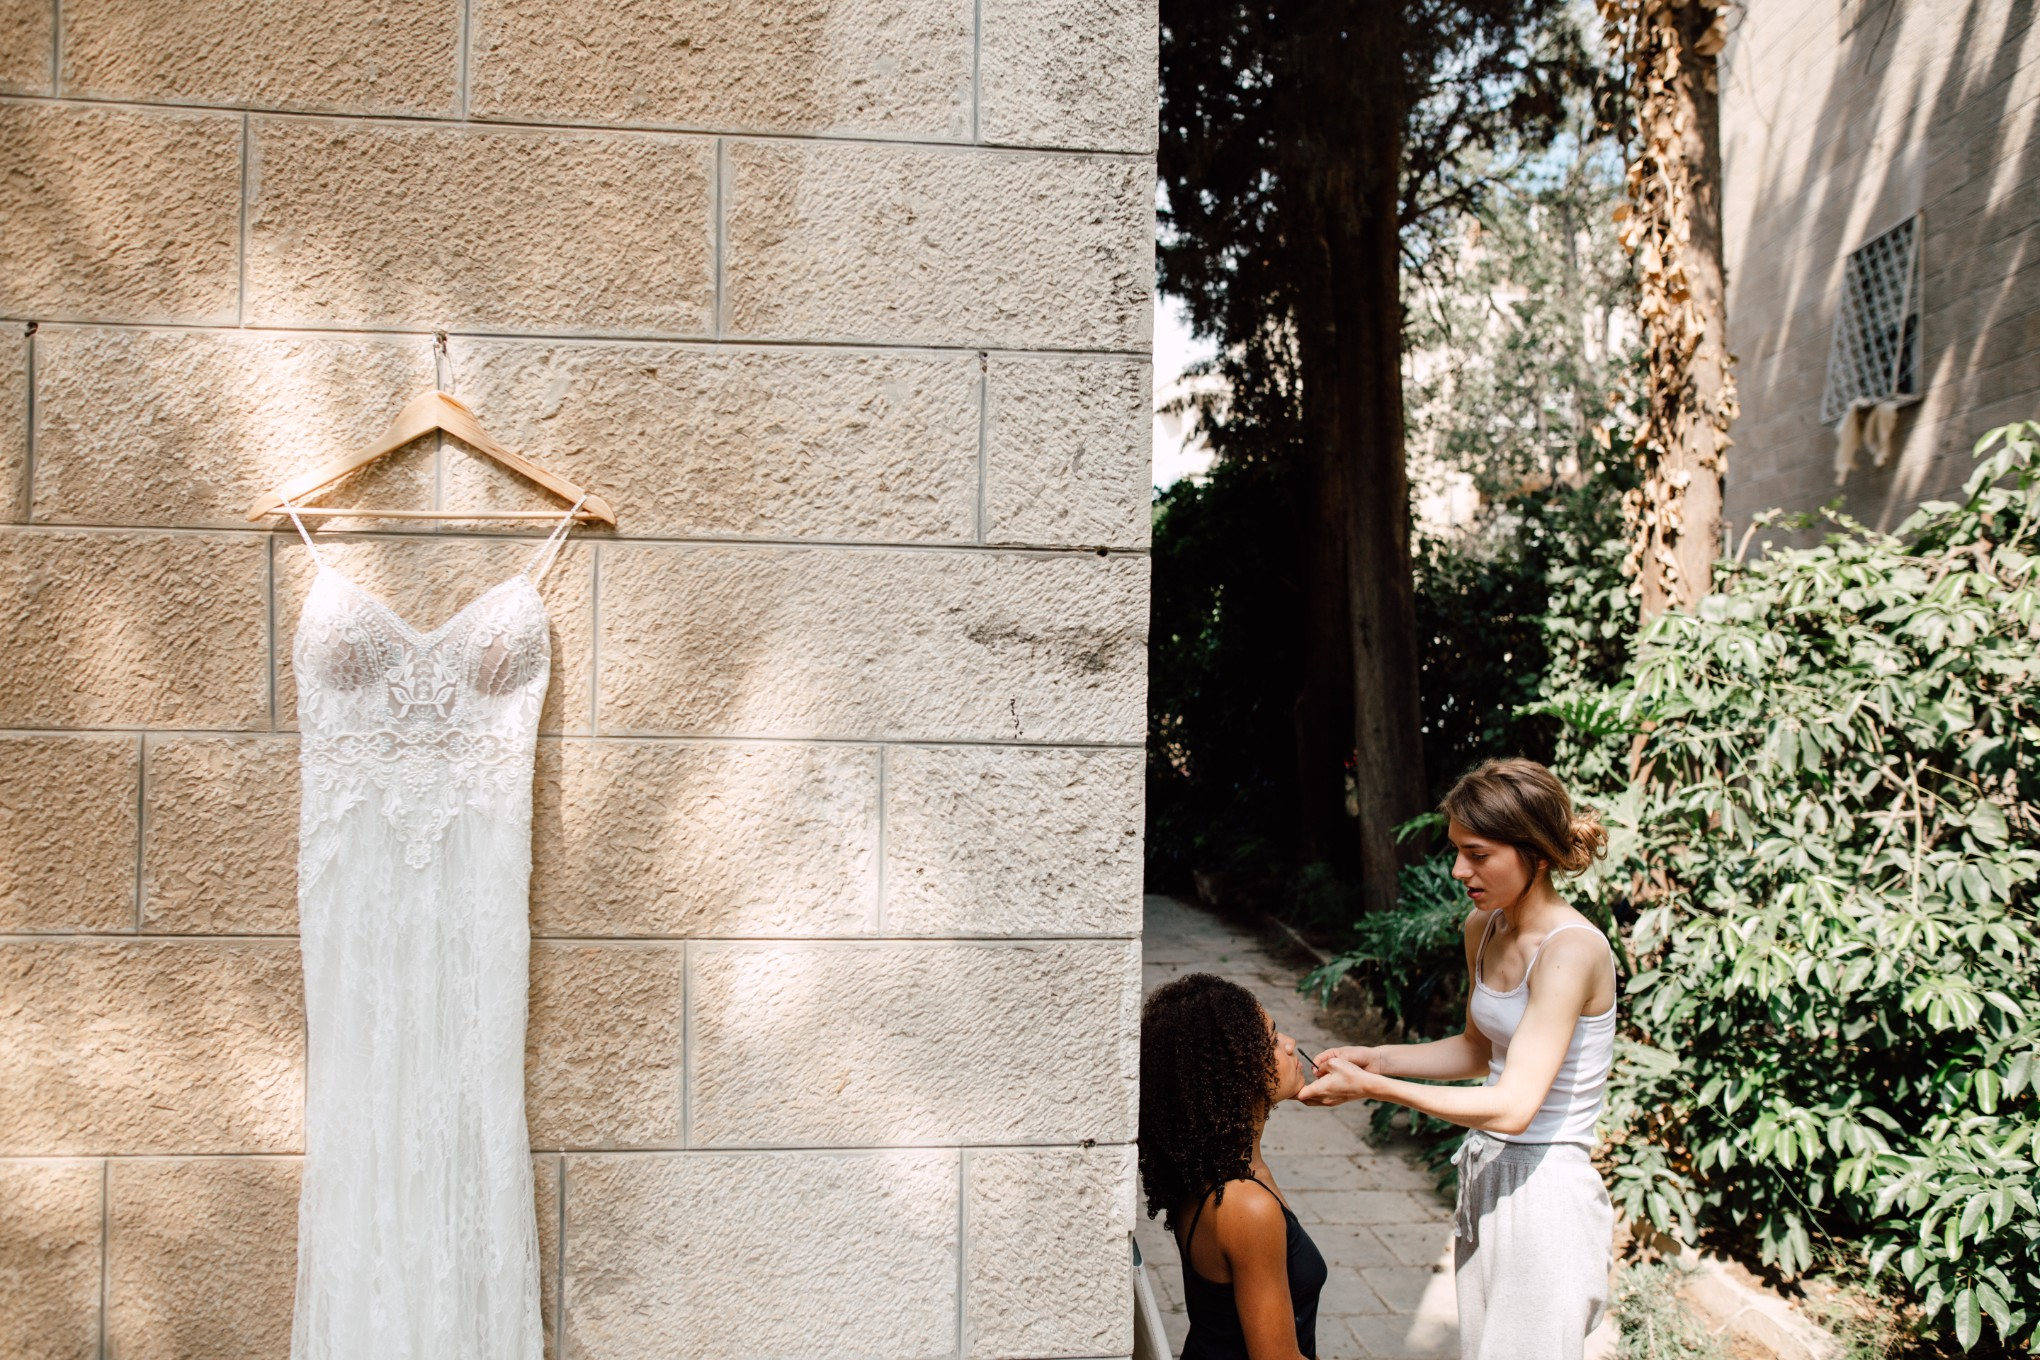 Jerusalem-Pia-Anna-Christian-Wedding-Photography-AD-GA-29.jpg